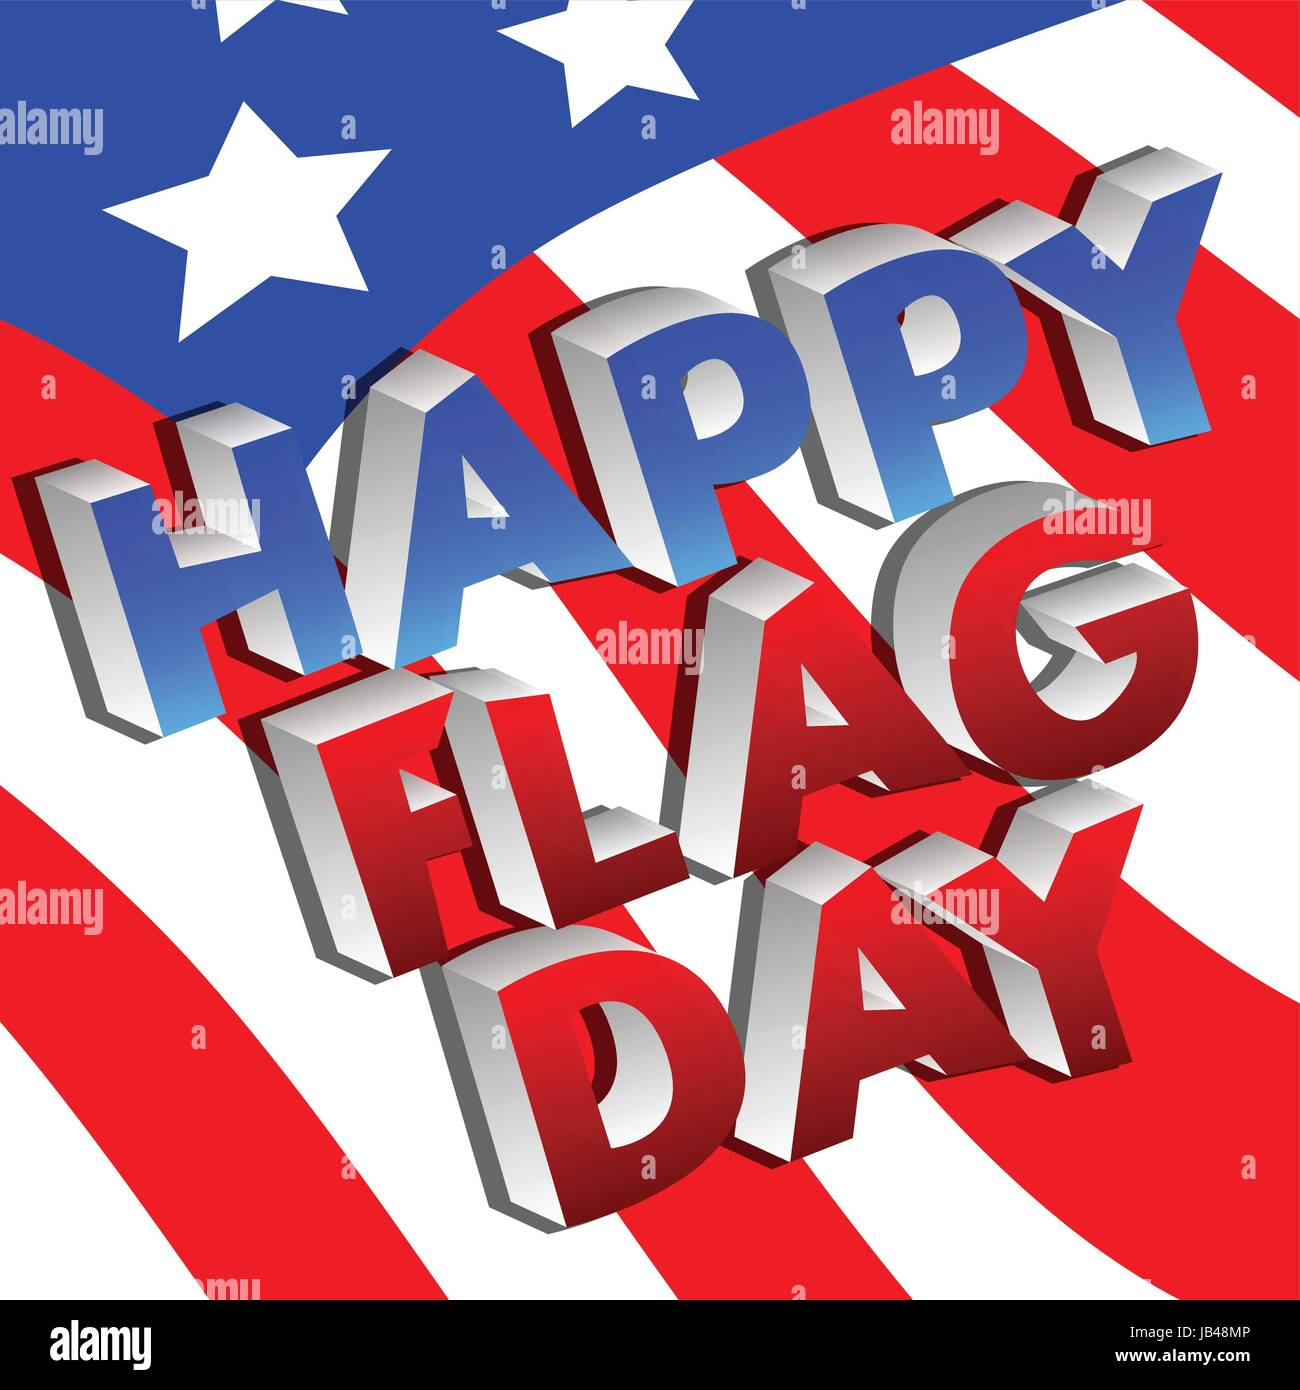 Vector illustrated banner or poster for the U.S.A.'s Flag Day holiday. - Stock Vector